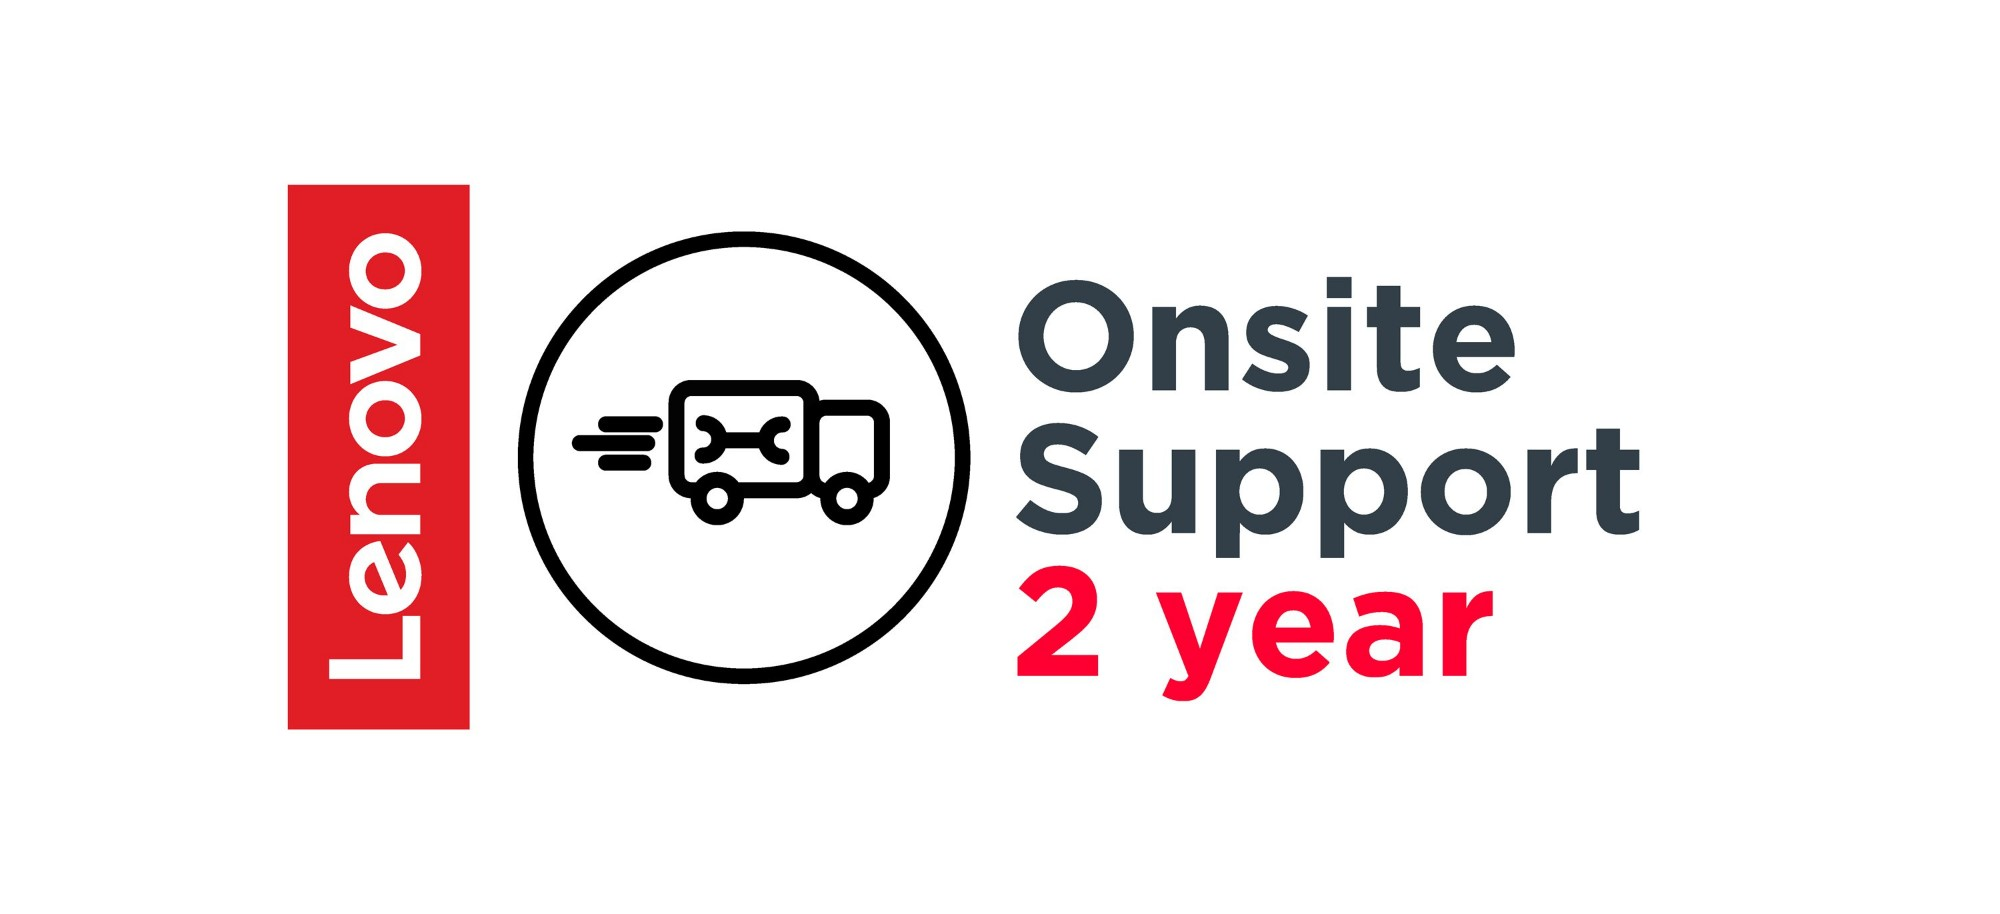 Lenovo 2 Year Onsite Support (Add-On)